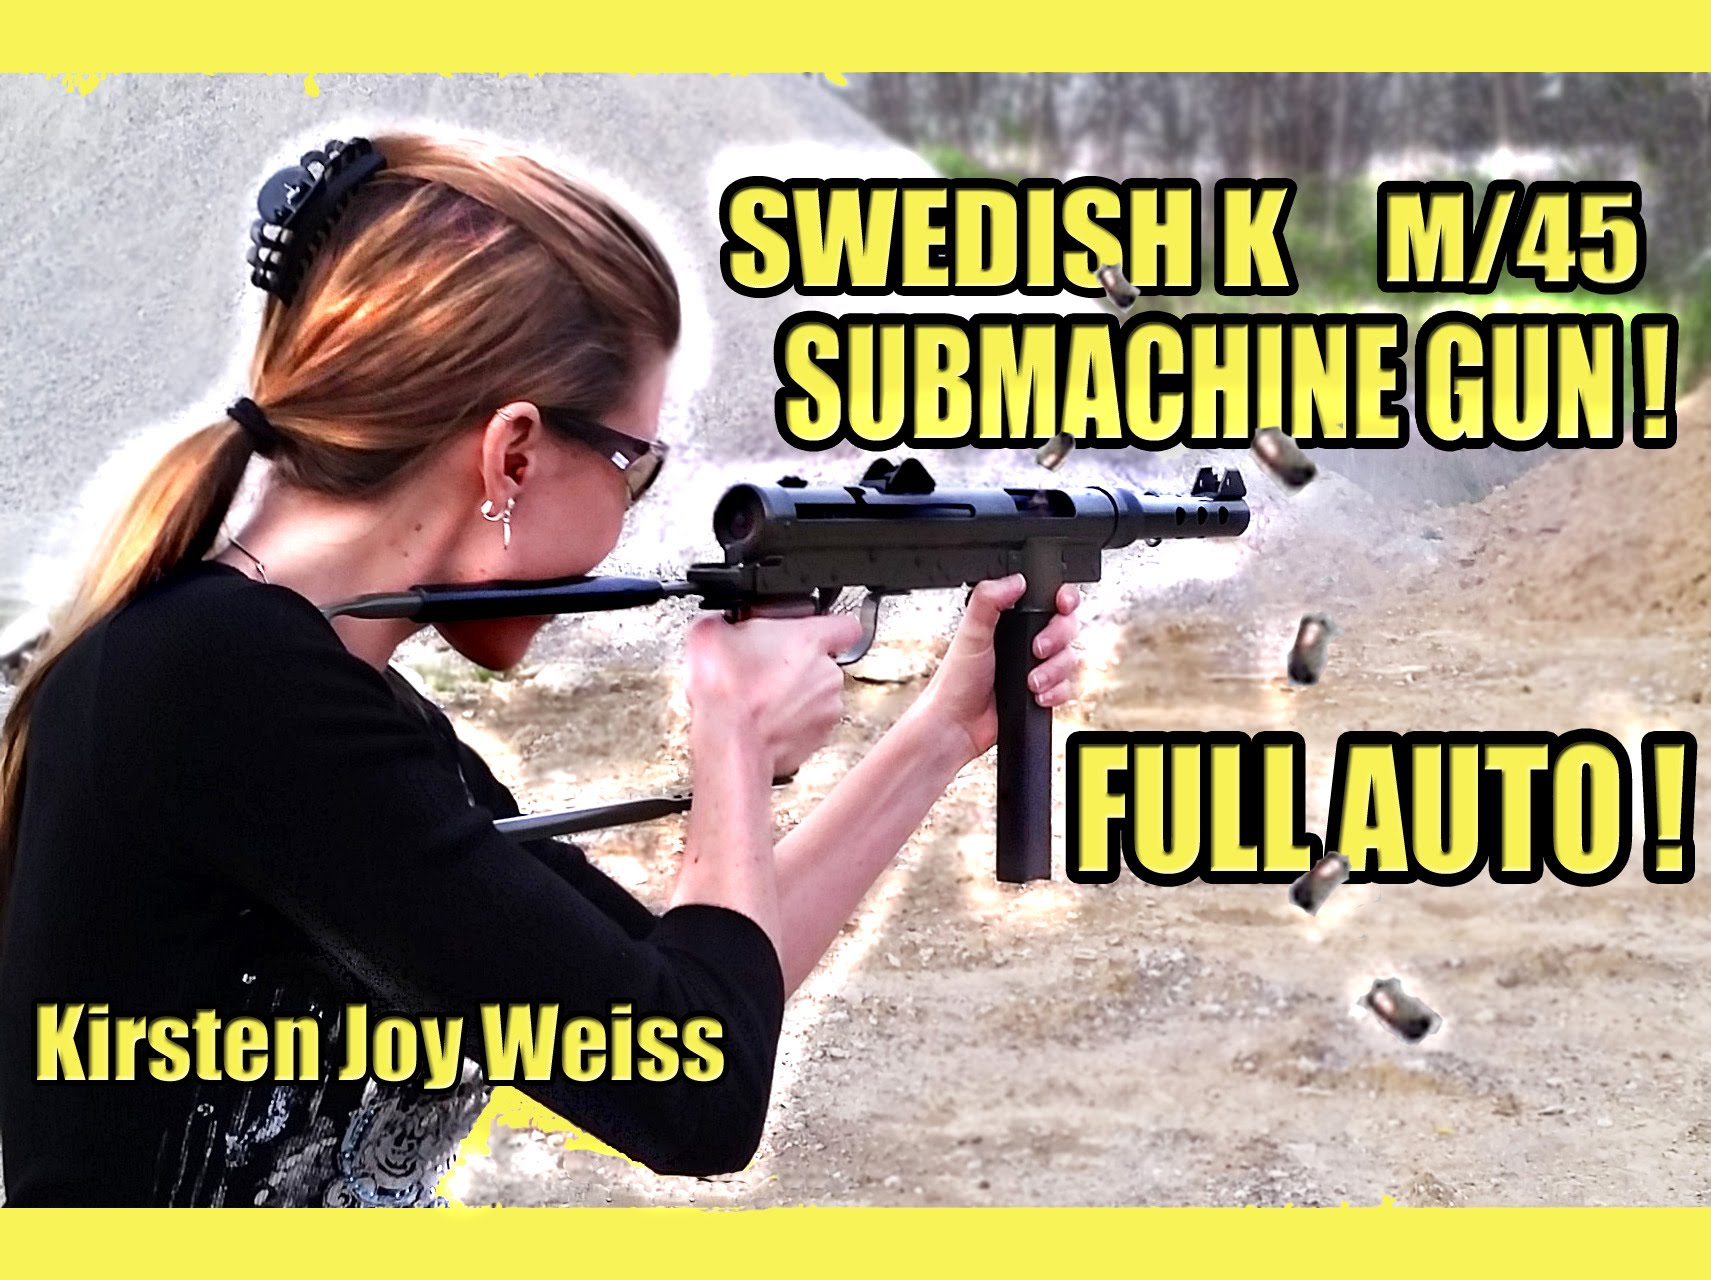 Swedish K Submachine Gun